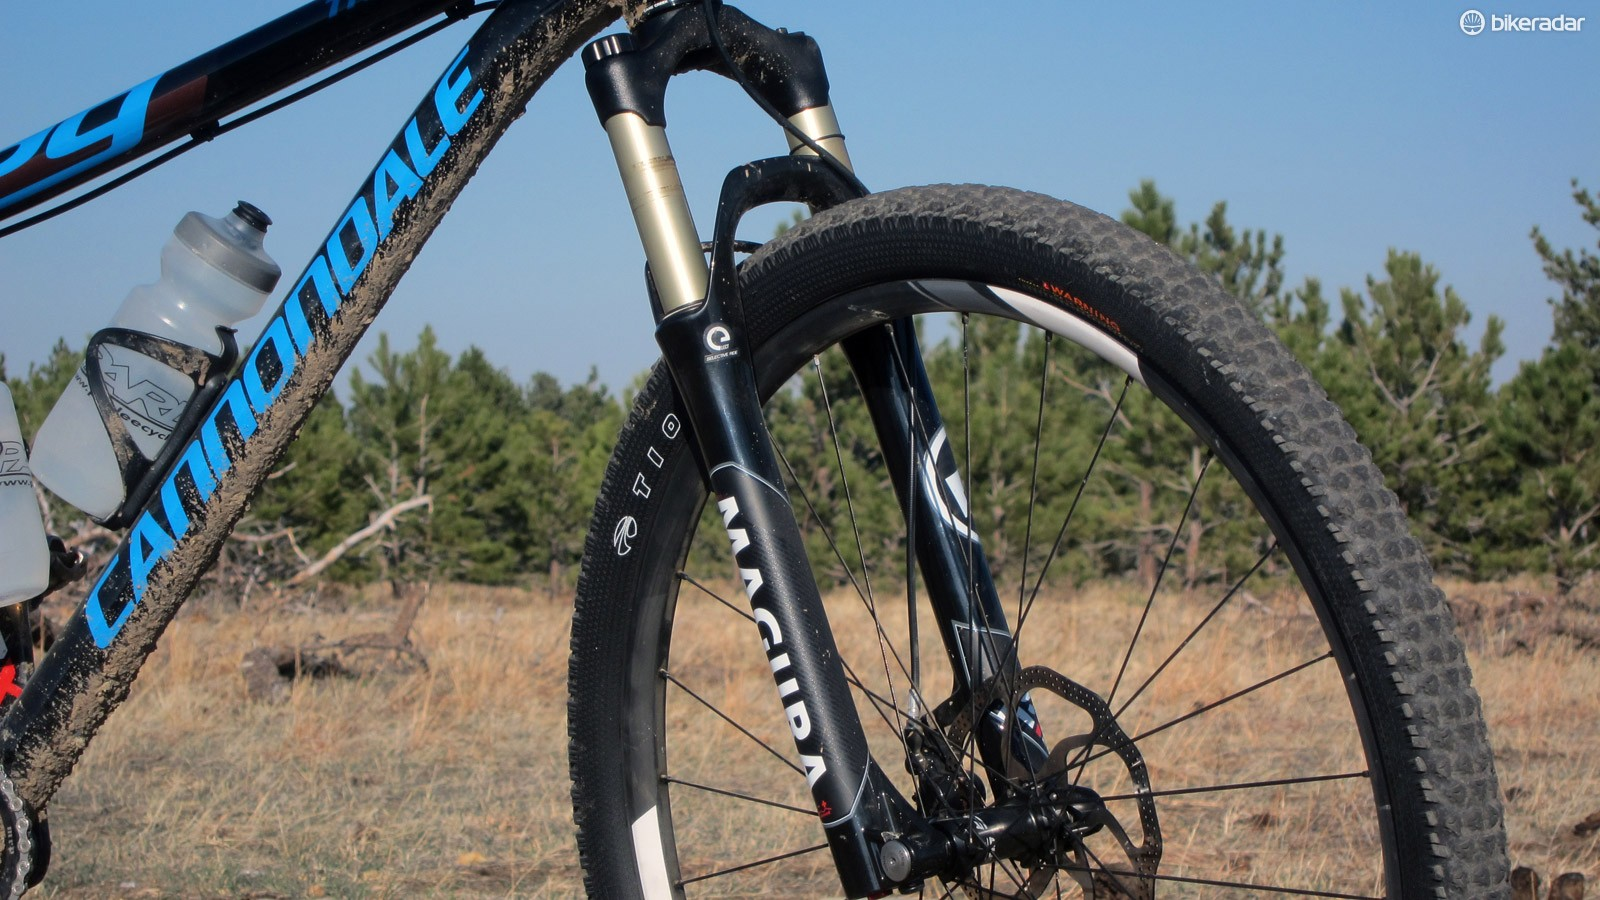 The Magura TS8 100 eLECT 29 fork features the company's impressive automatic electronic compression damper